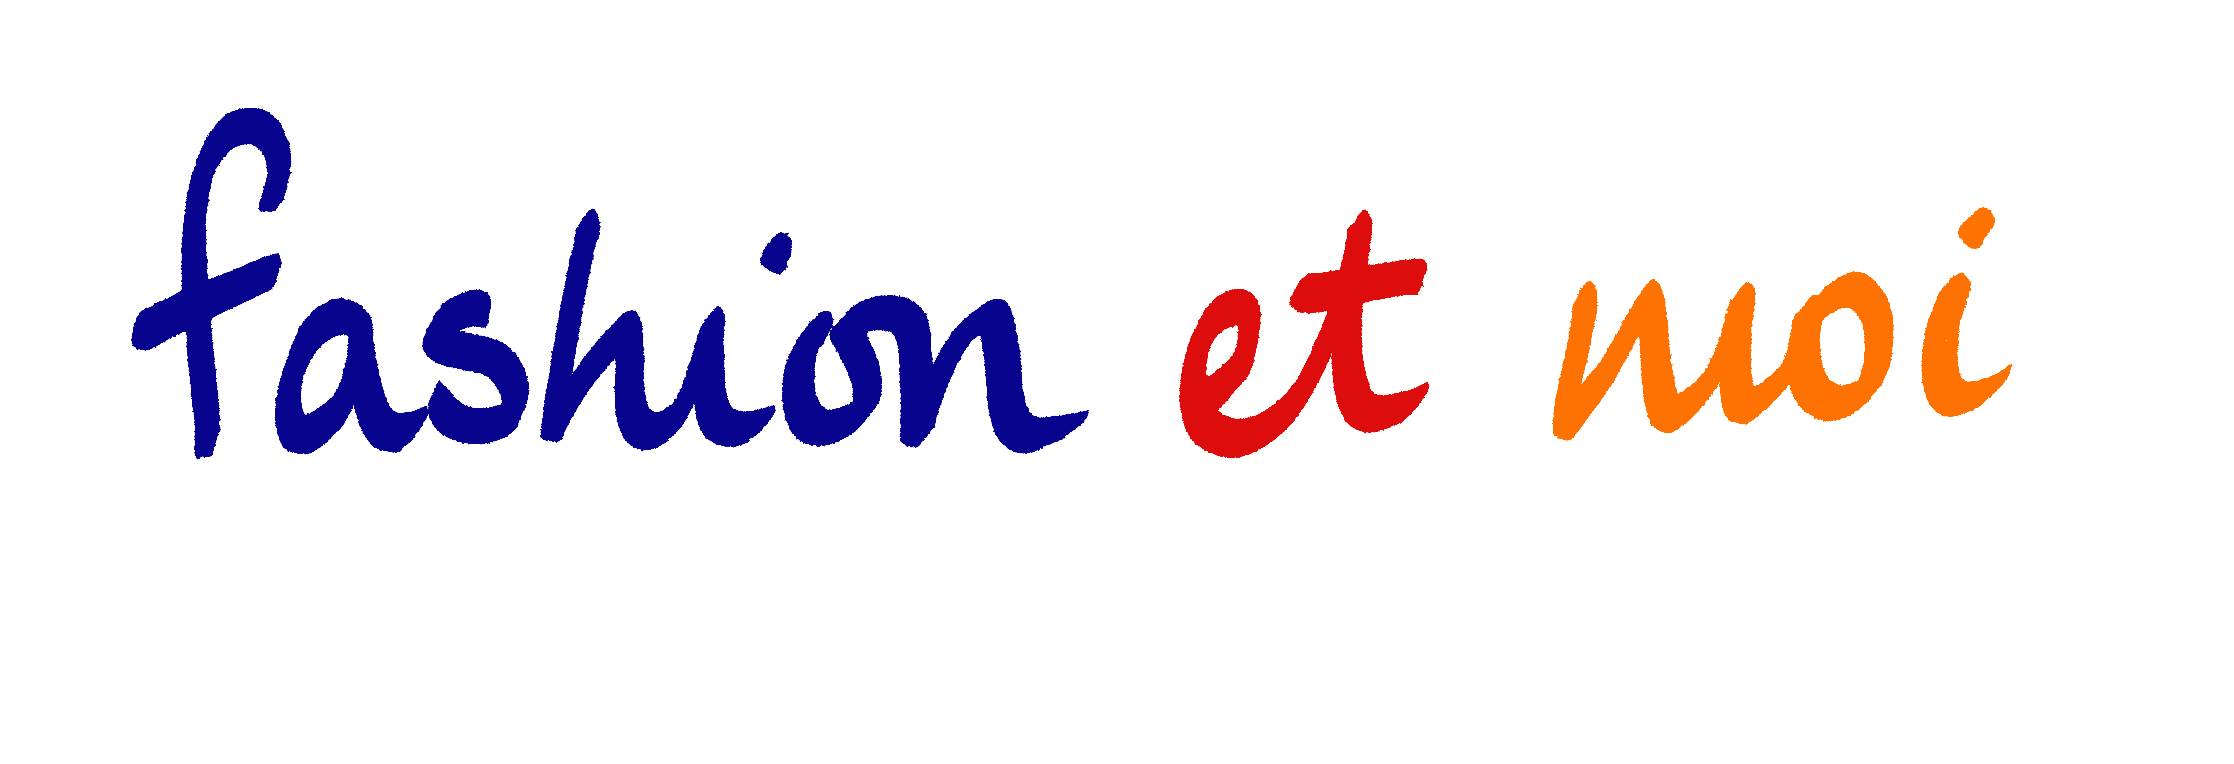 Fashion Et Moi logo in blue red orange